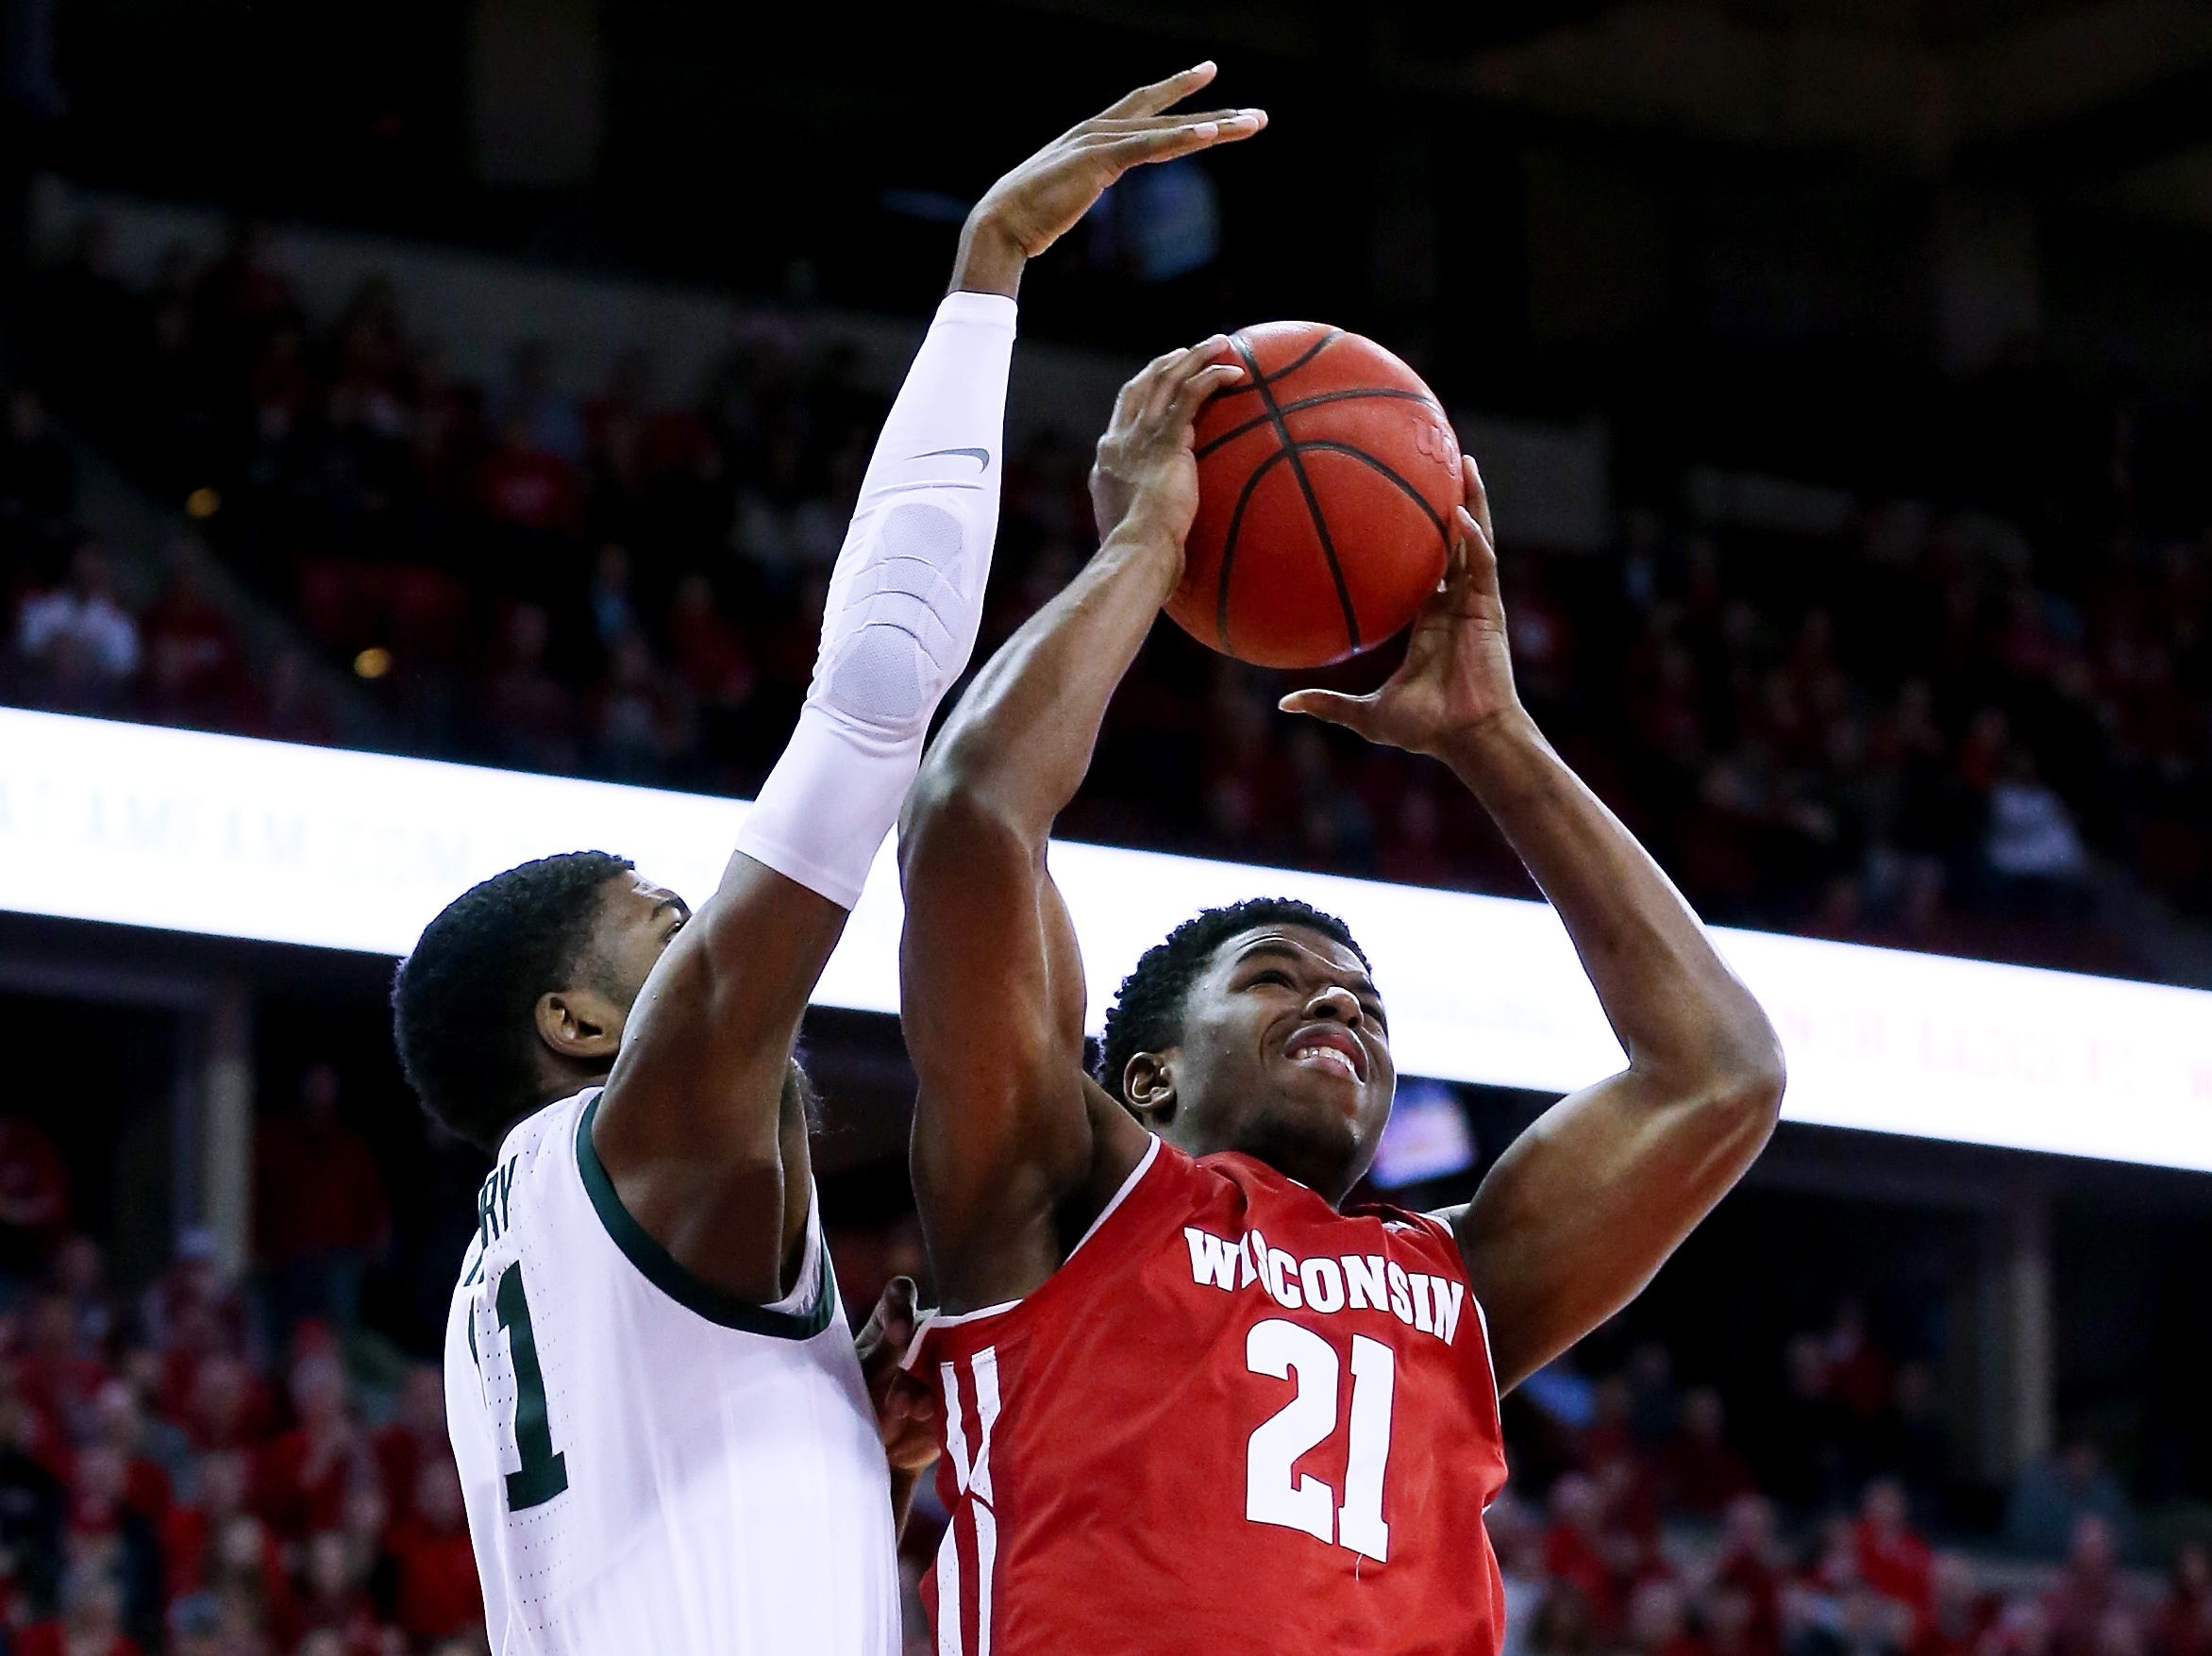 MADISON, WISCONSIN - FEBRUARY 12:  Khalil Iverson #21 of the Wisconsin Badgers attempts a shot while being guarded by Aaron Henry #11 of the Michigan State Spartans in the first half at the Kohl Center on February 12, 2019 in Madison, Wisconsin.